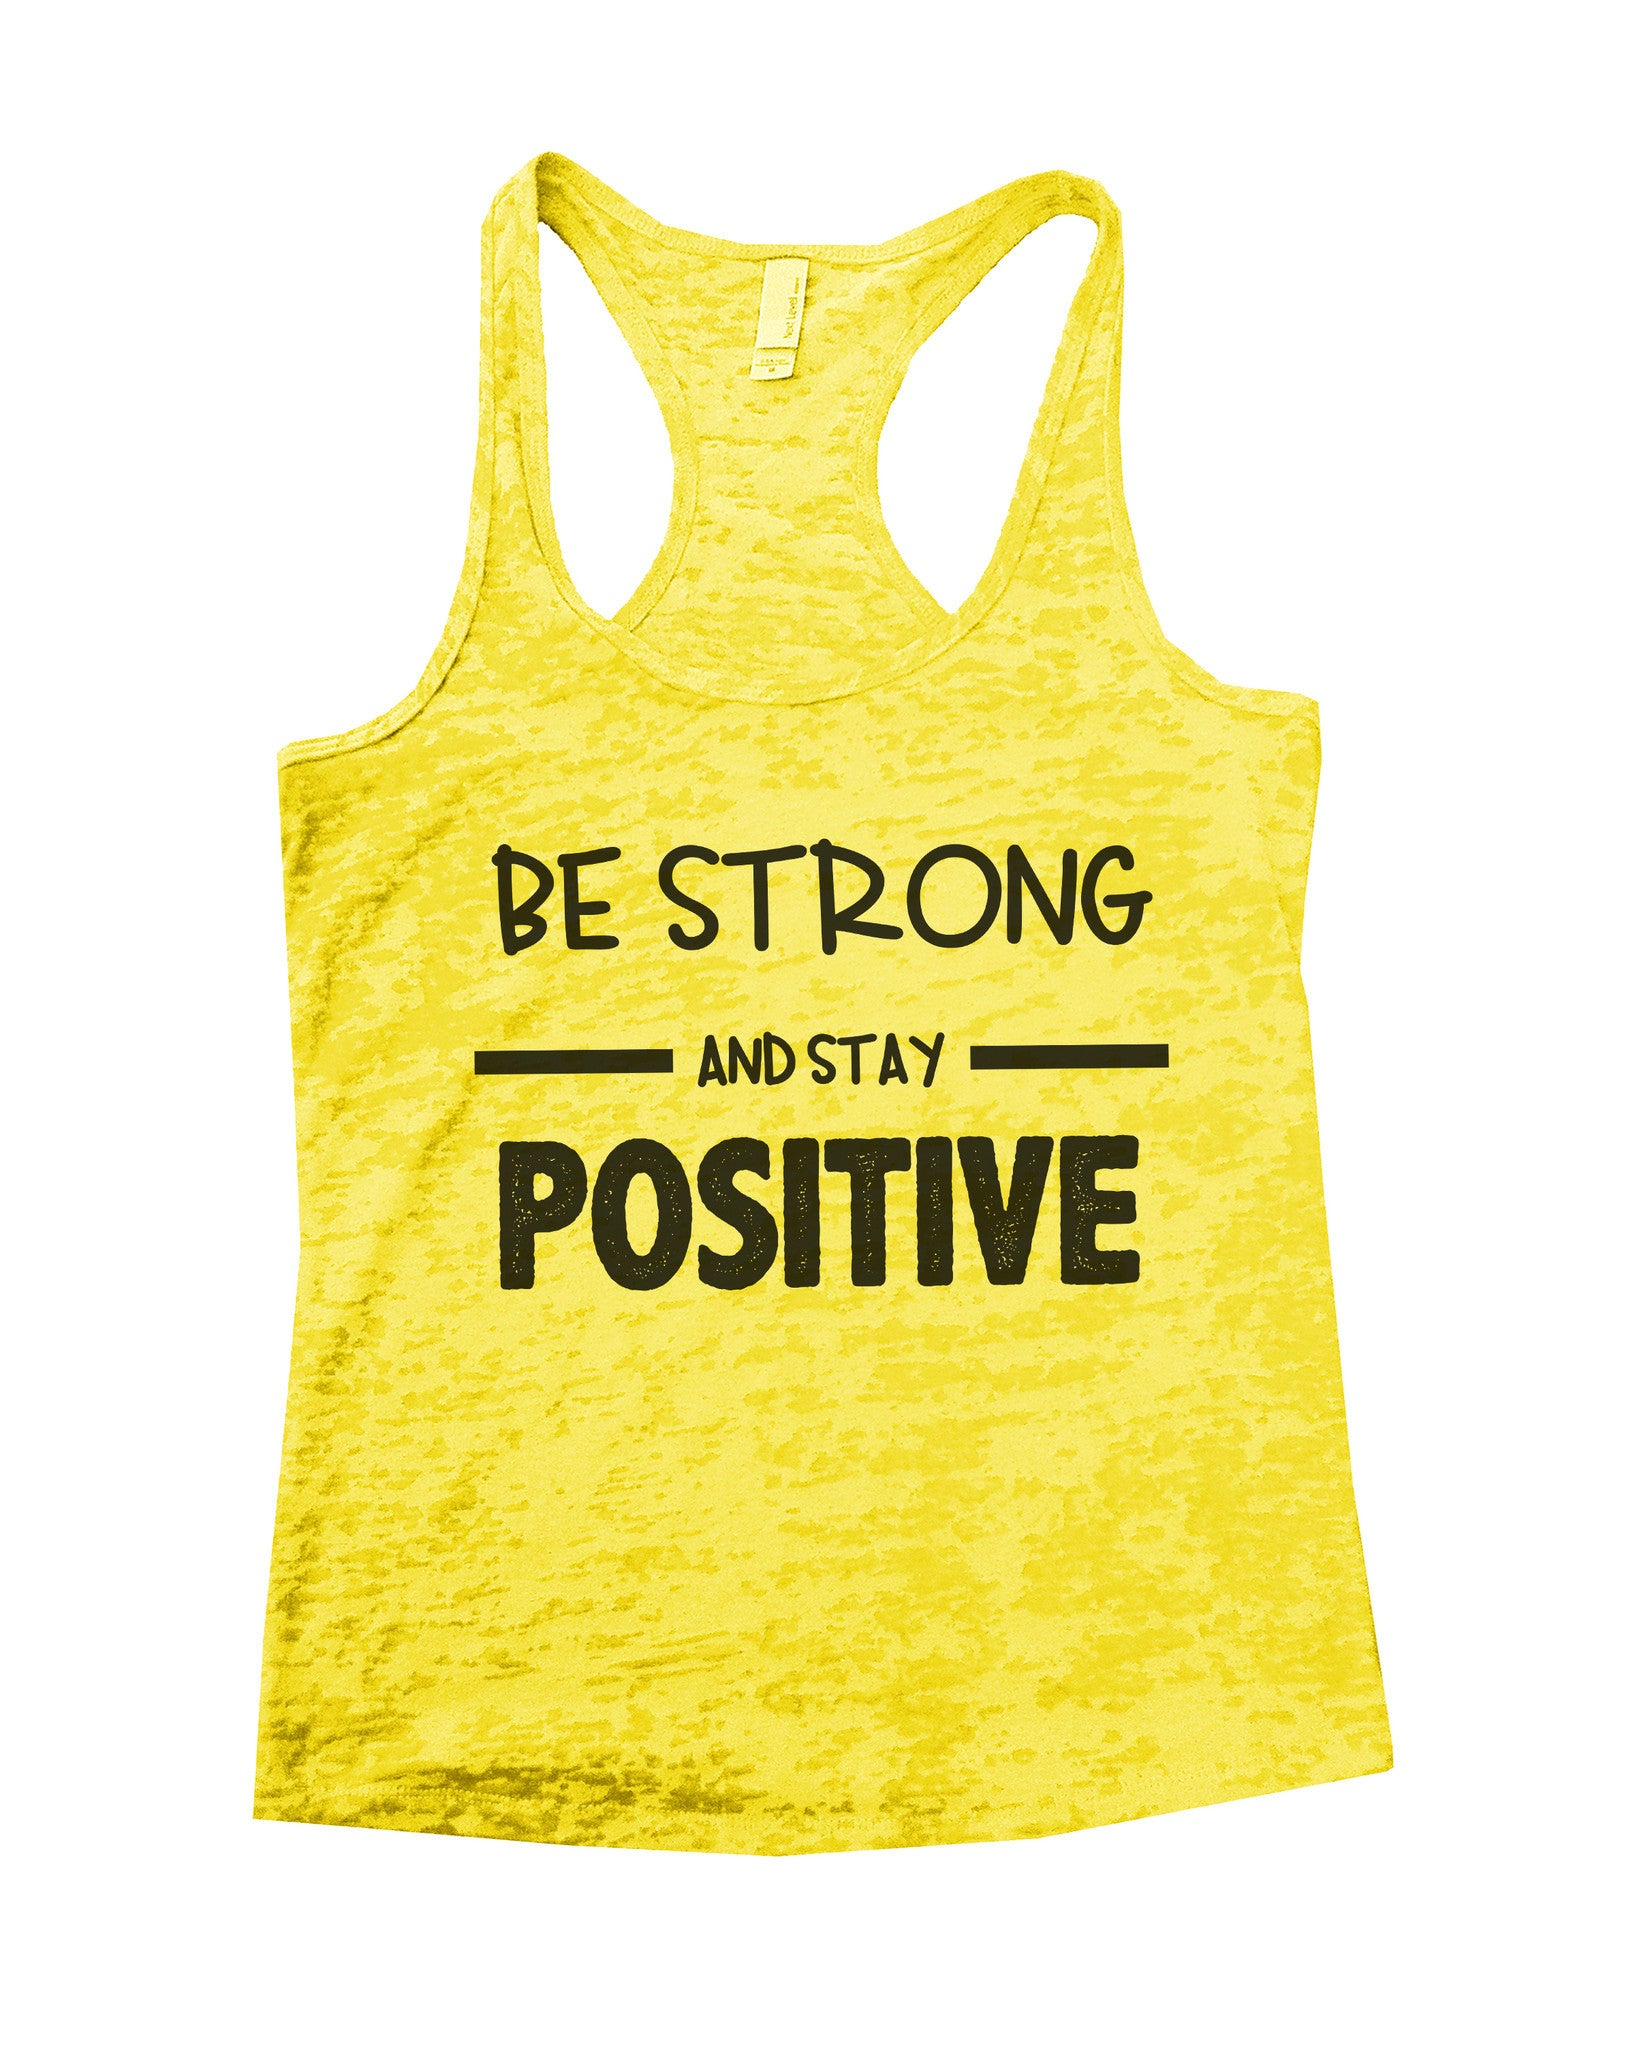 Be Strong And Stay Positive Womens Burnout Tank Top By BurnoutTankTops.com - 657 - Funny Shirts Tank Tops Burnouts and Triblends  - 7